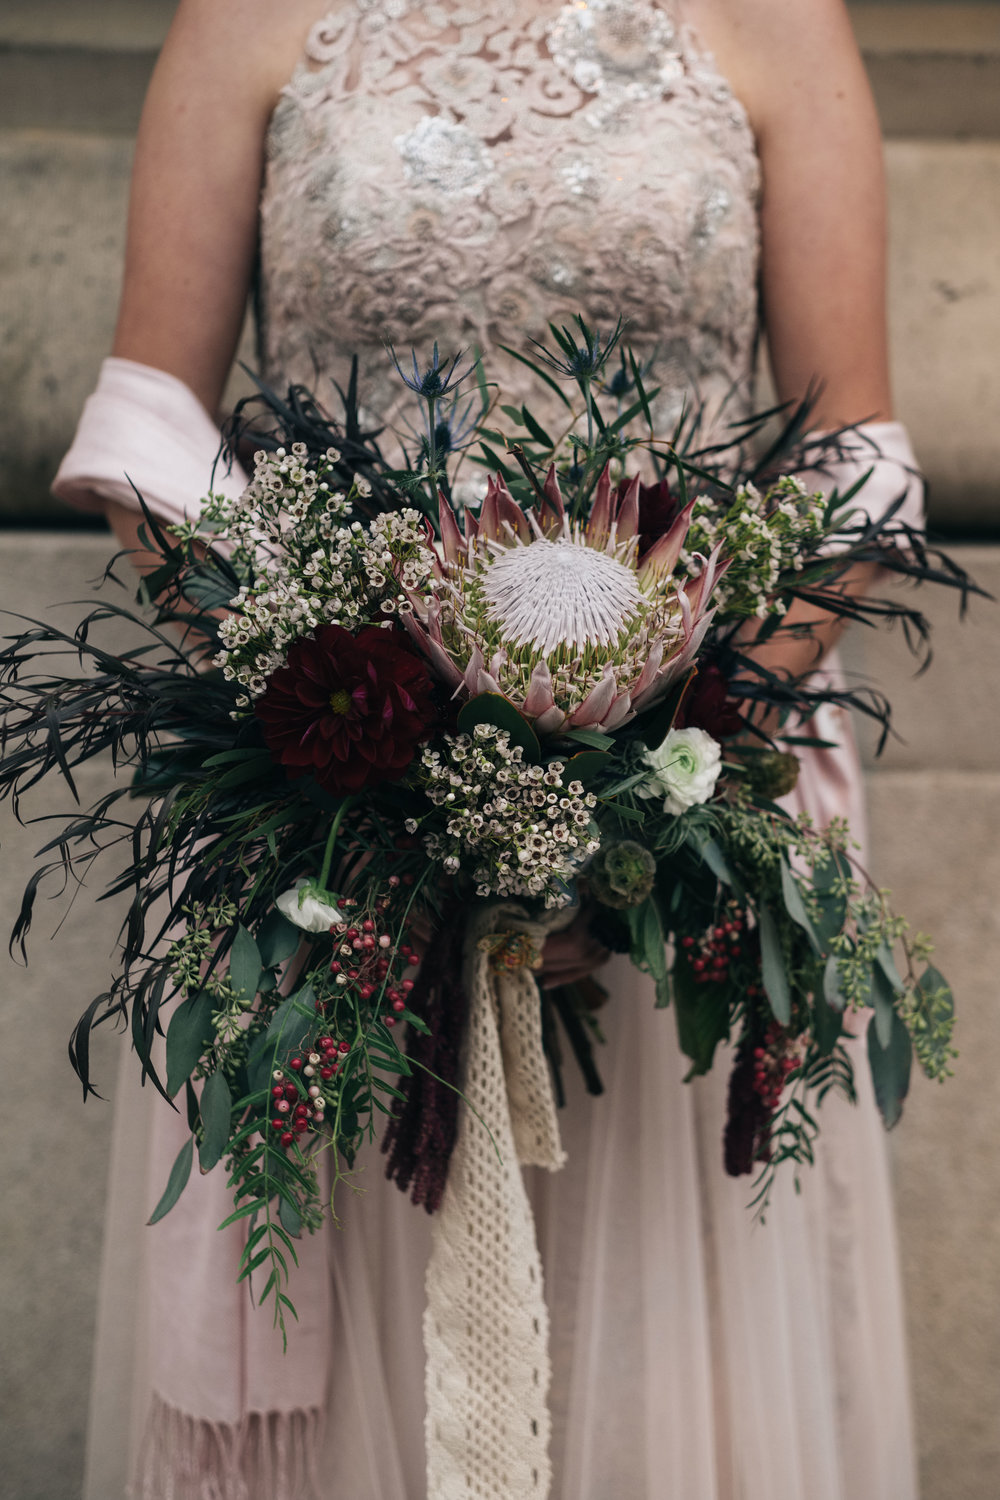 Bride with Toledo Wedding Photographers and Floral Designs from La Boutique Nostalgie on Wedding Day